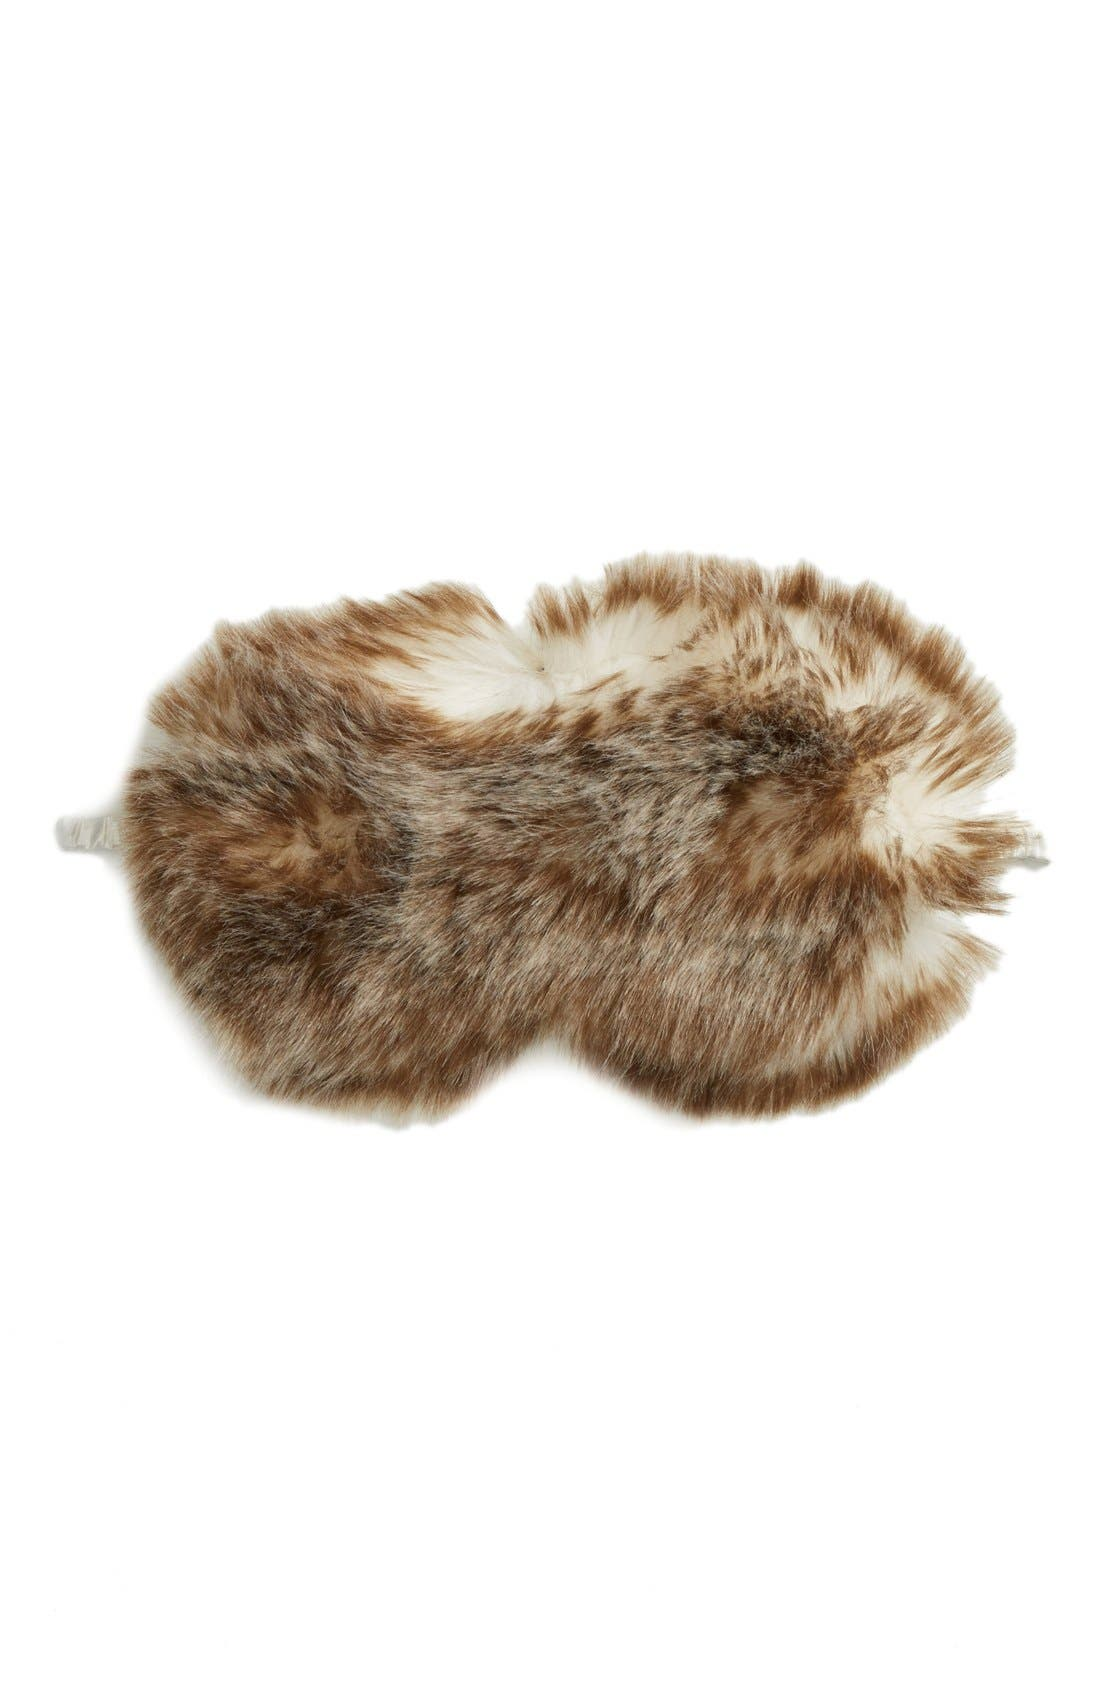 Alternate Image 1 Selected - Nordstrom Faux Fur Eye Mask